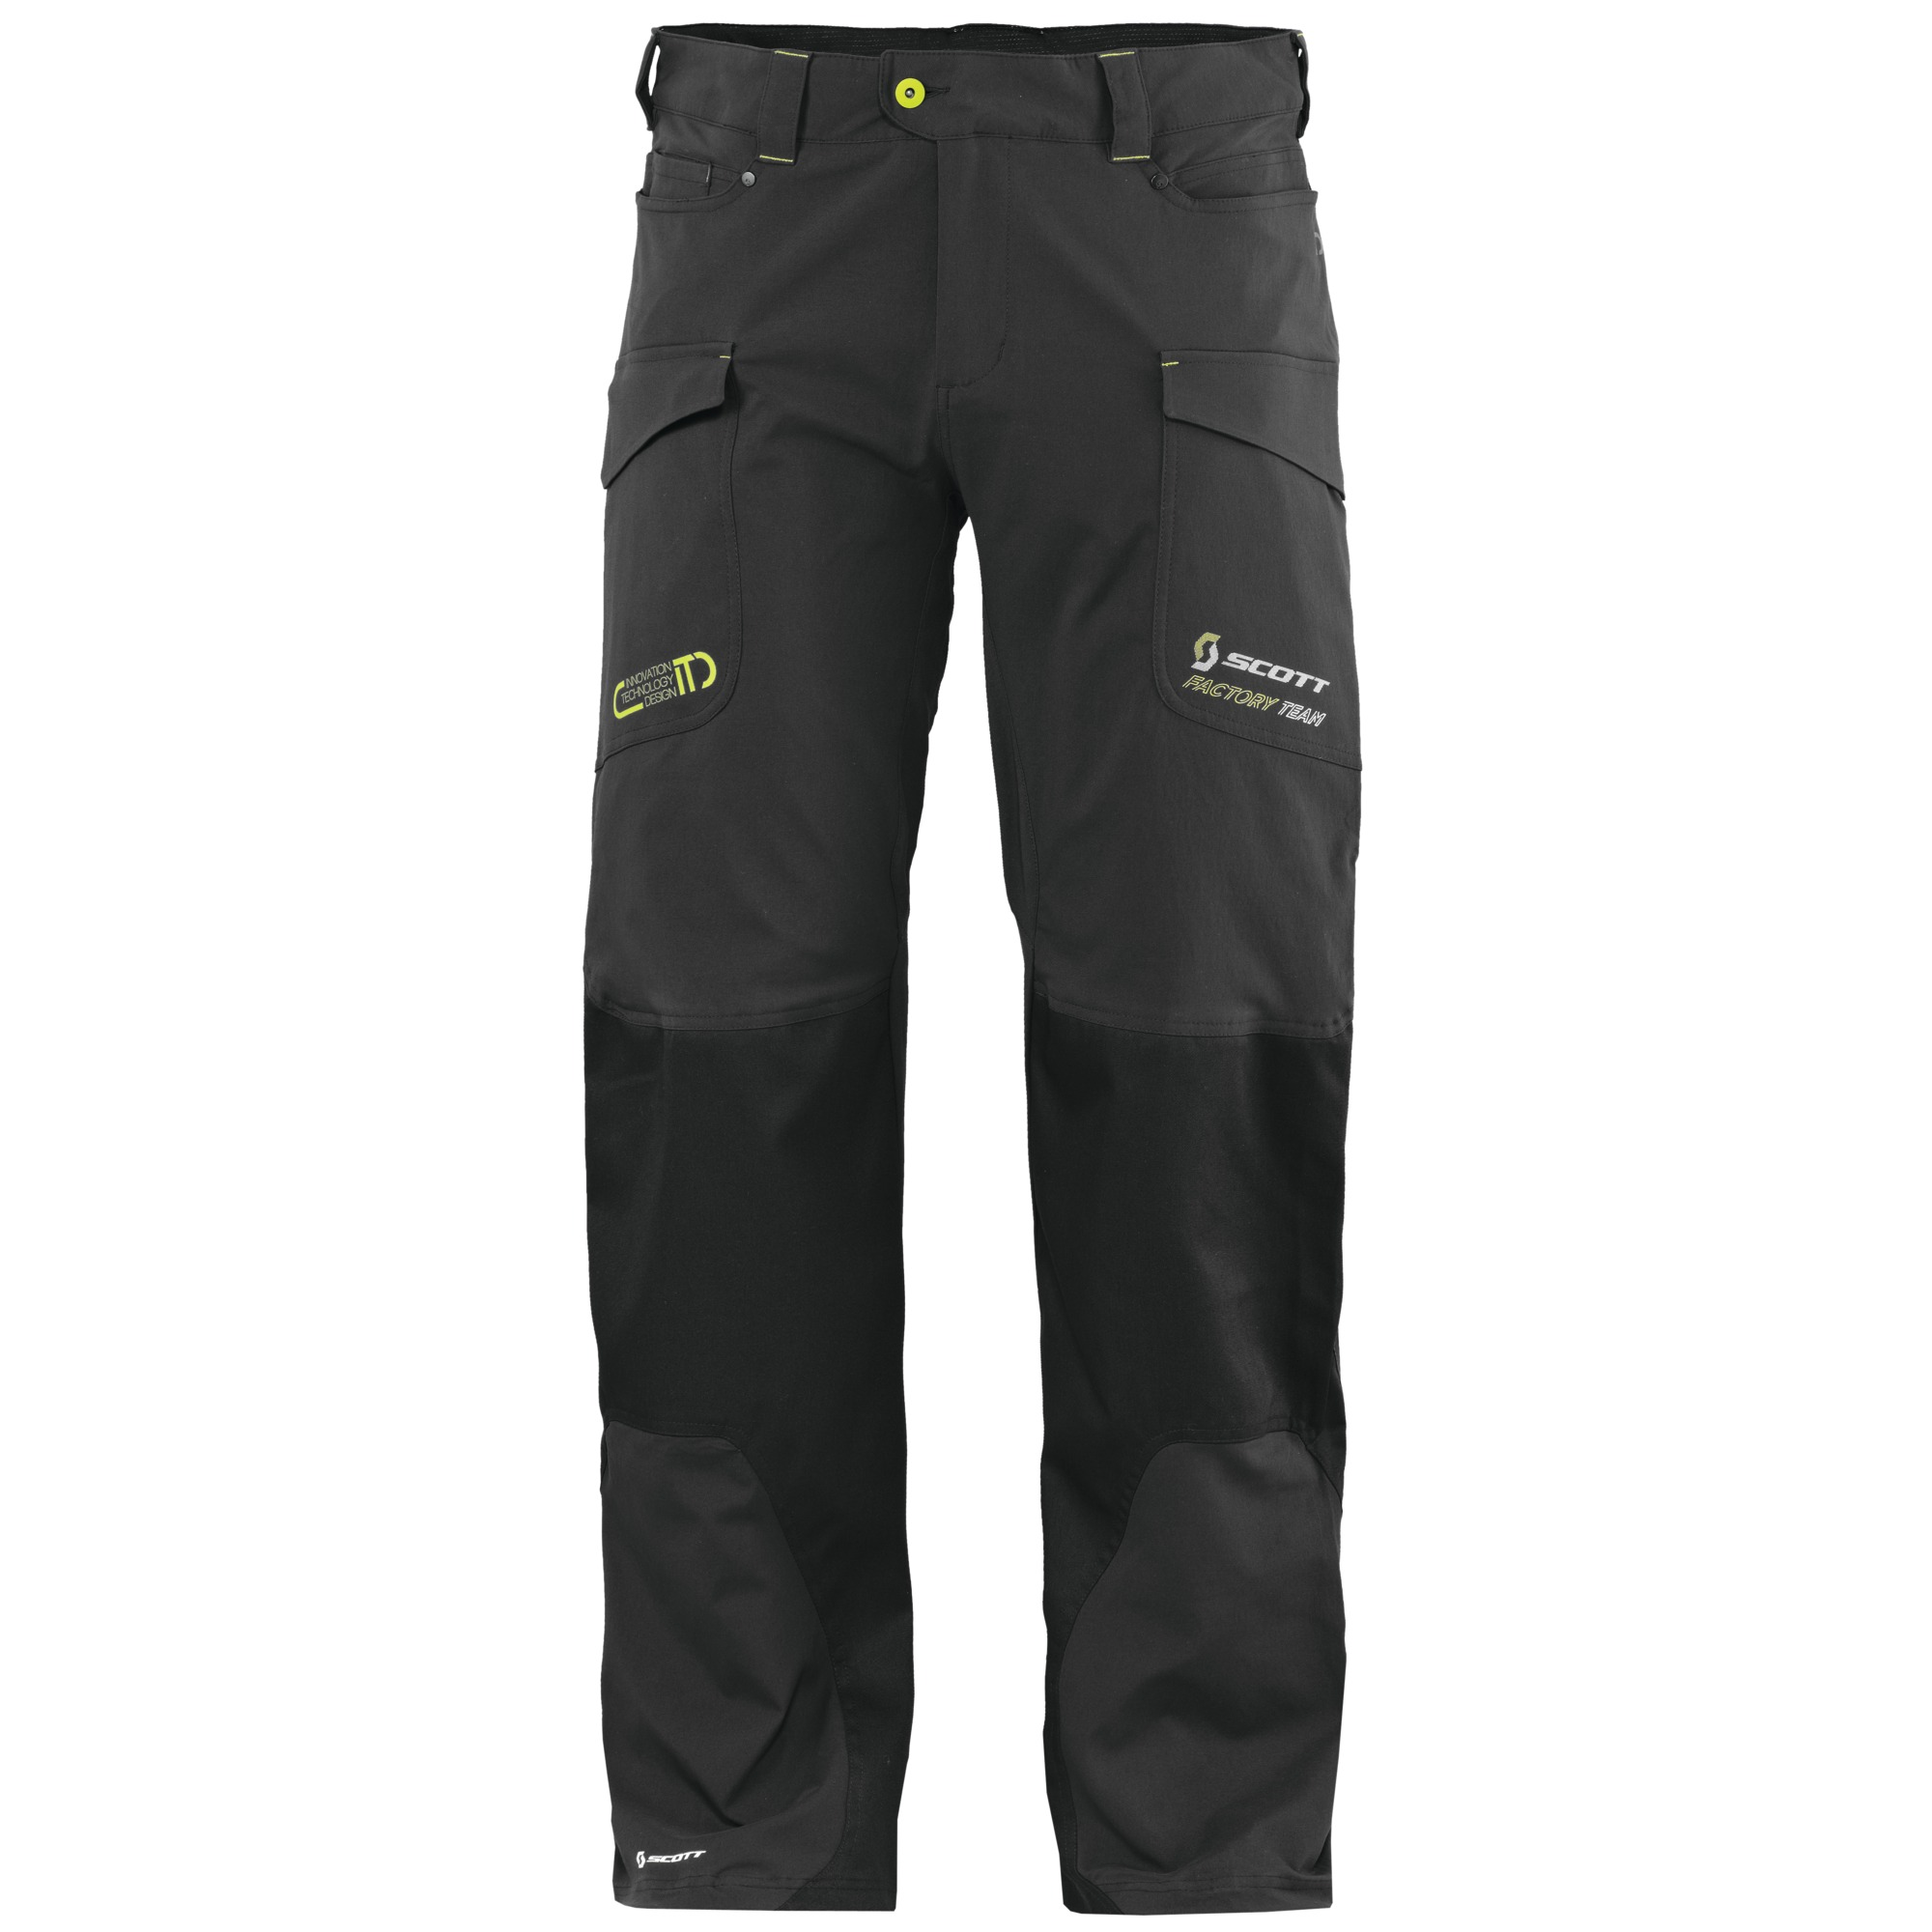 SCOTT FACTORY TEAM SUPPORT PANTS